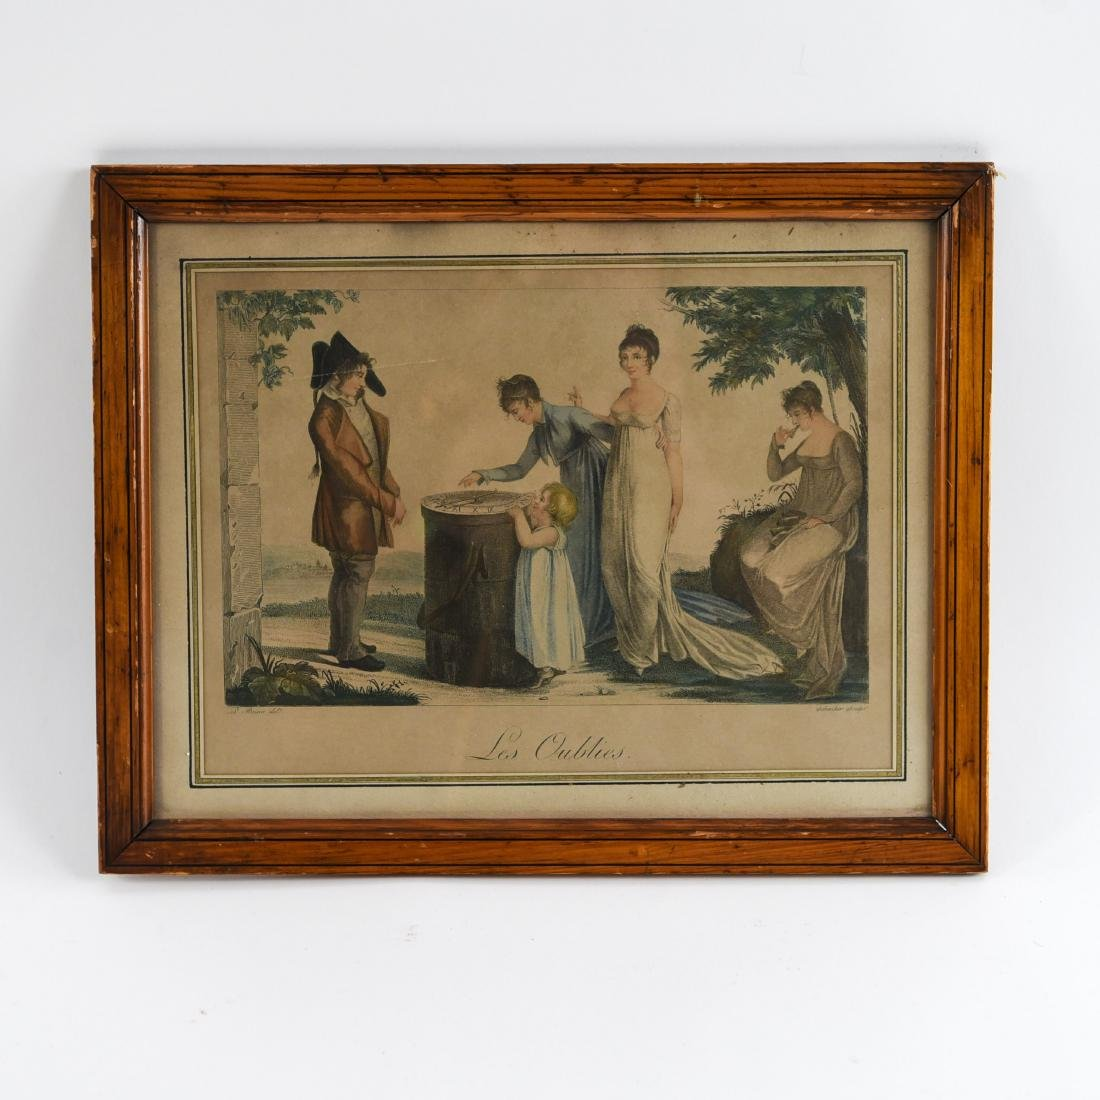 19TH C. FRENCH HAND COLORED AQUATINT W/ SUNDIAL